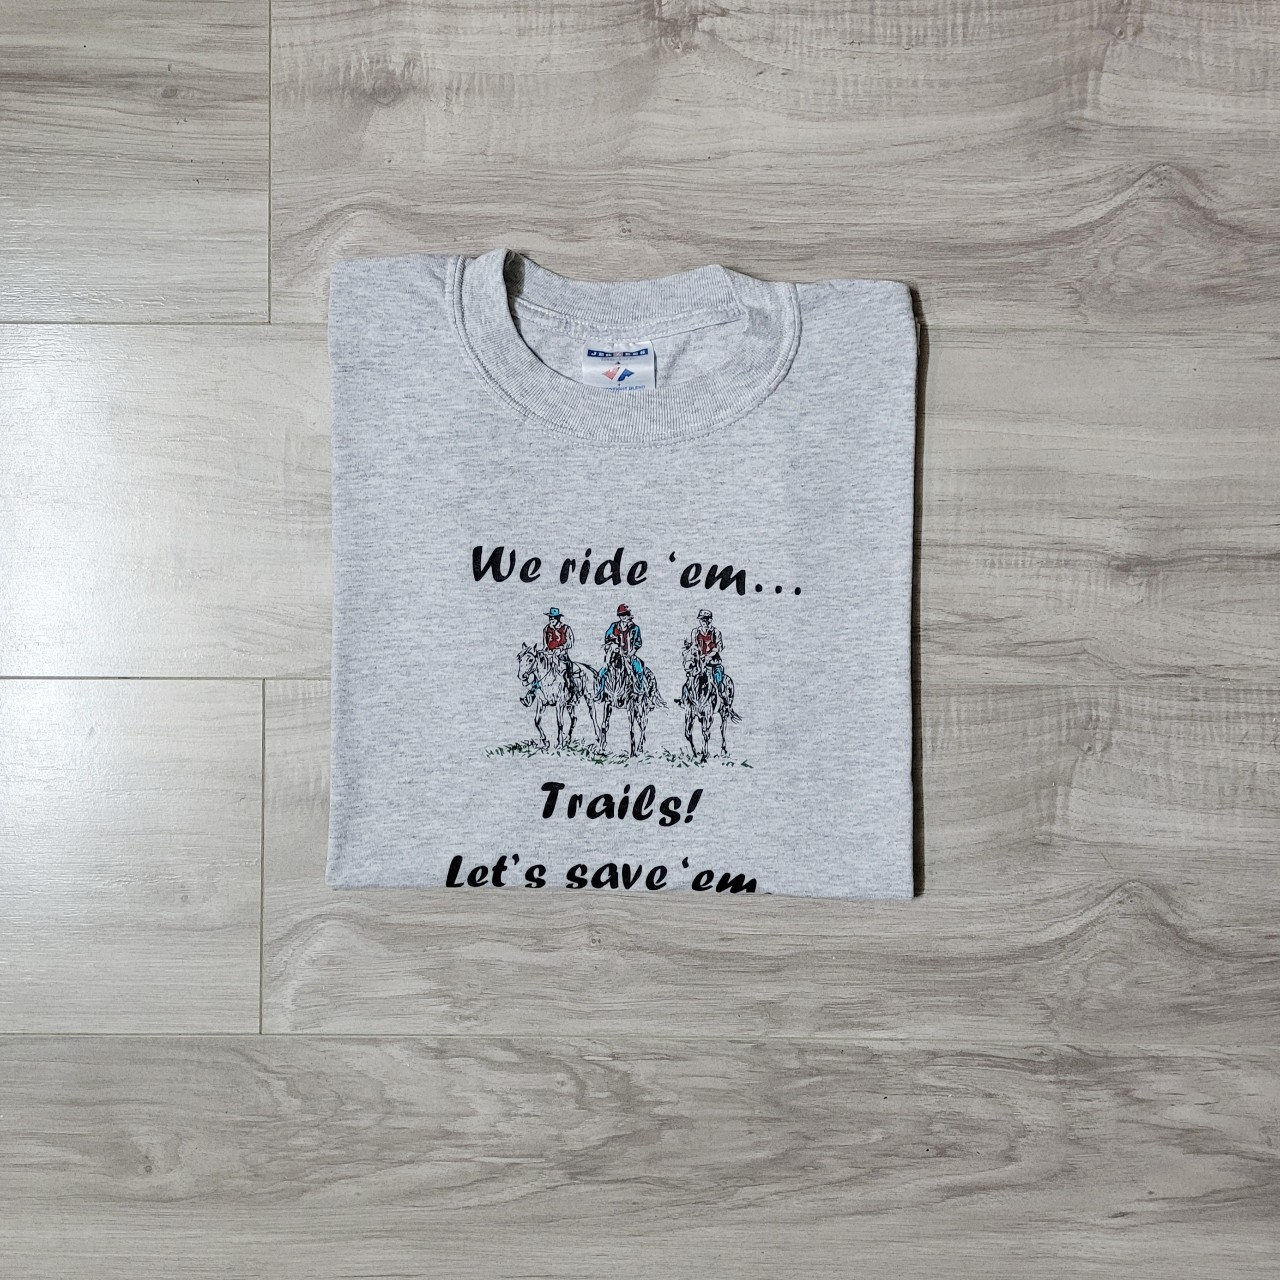 Product Image 1 - Women's horse t-shirt. Reads 'We